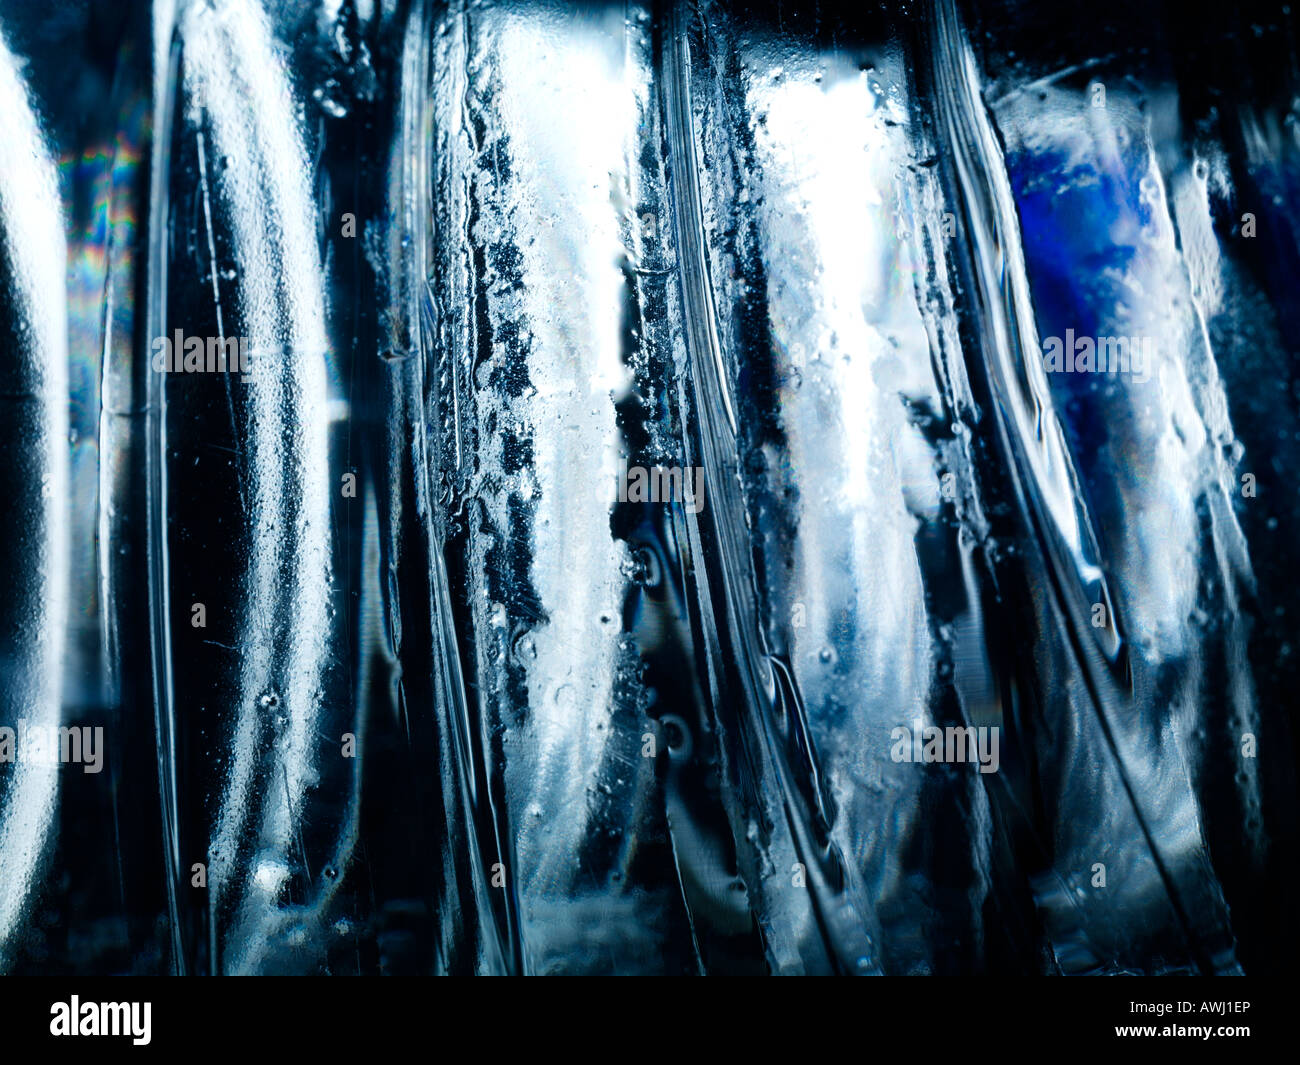 Abstract fine art images Large files size A plastic bottle lit with a moving lightsource - Stock Image